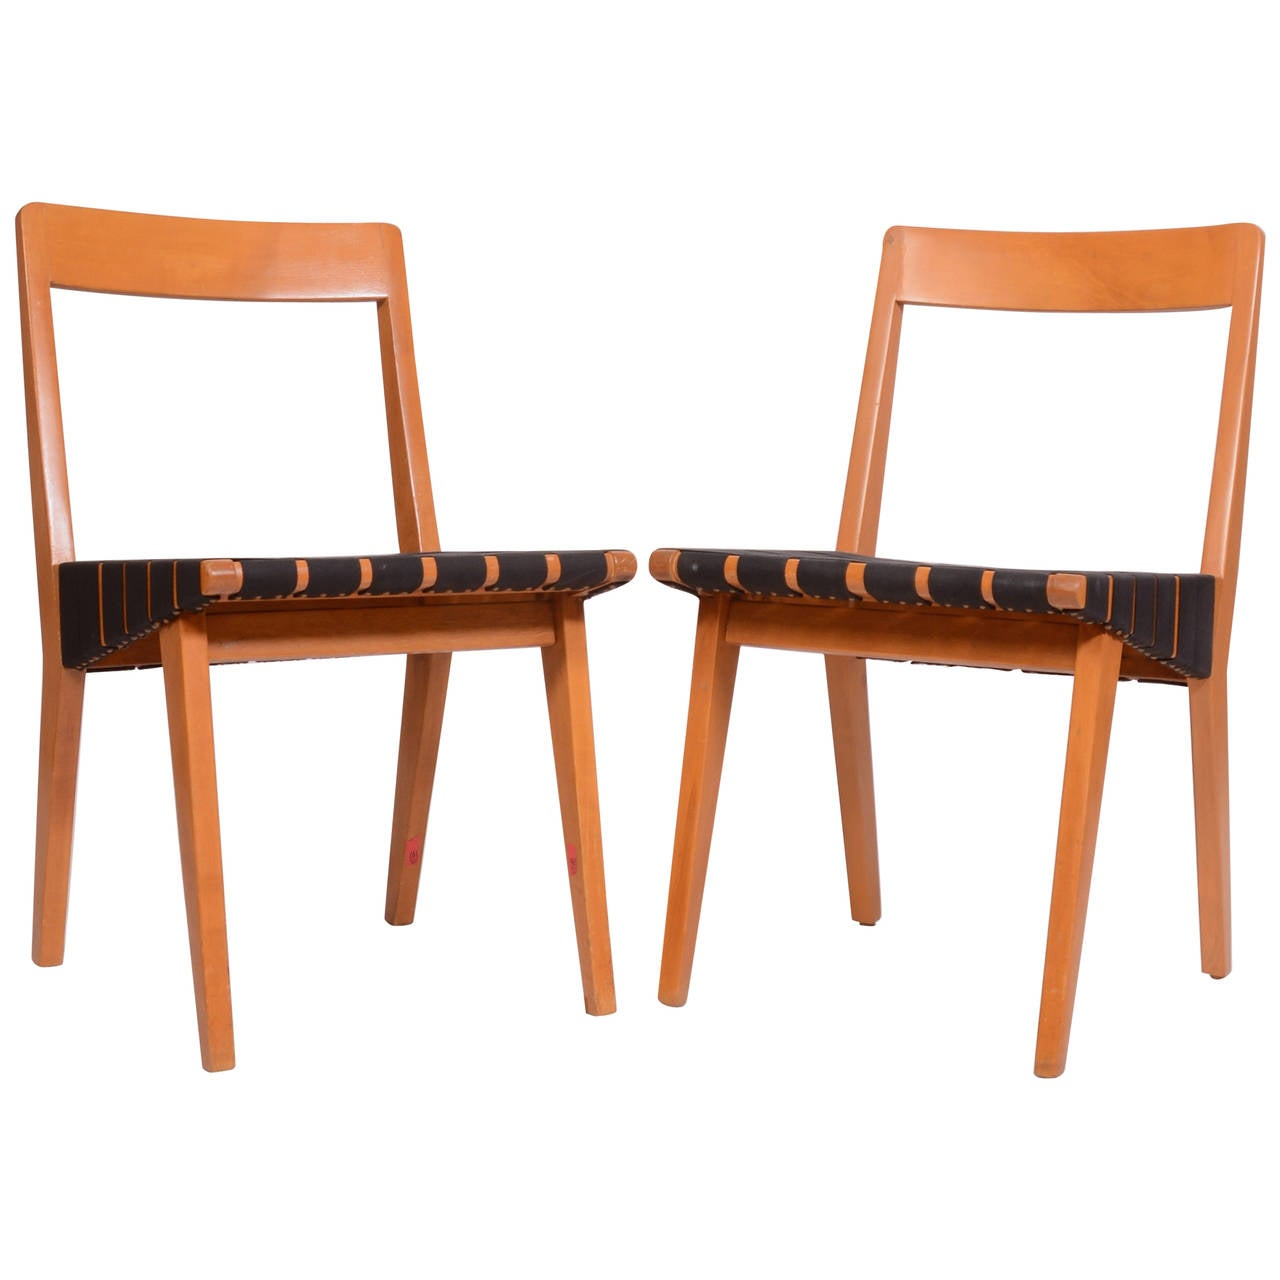 Jens Risom Side Chair Pair Of Jens Risom 666 Side Chairs For Knoll For Sale At 1stdibs